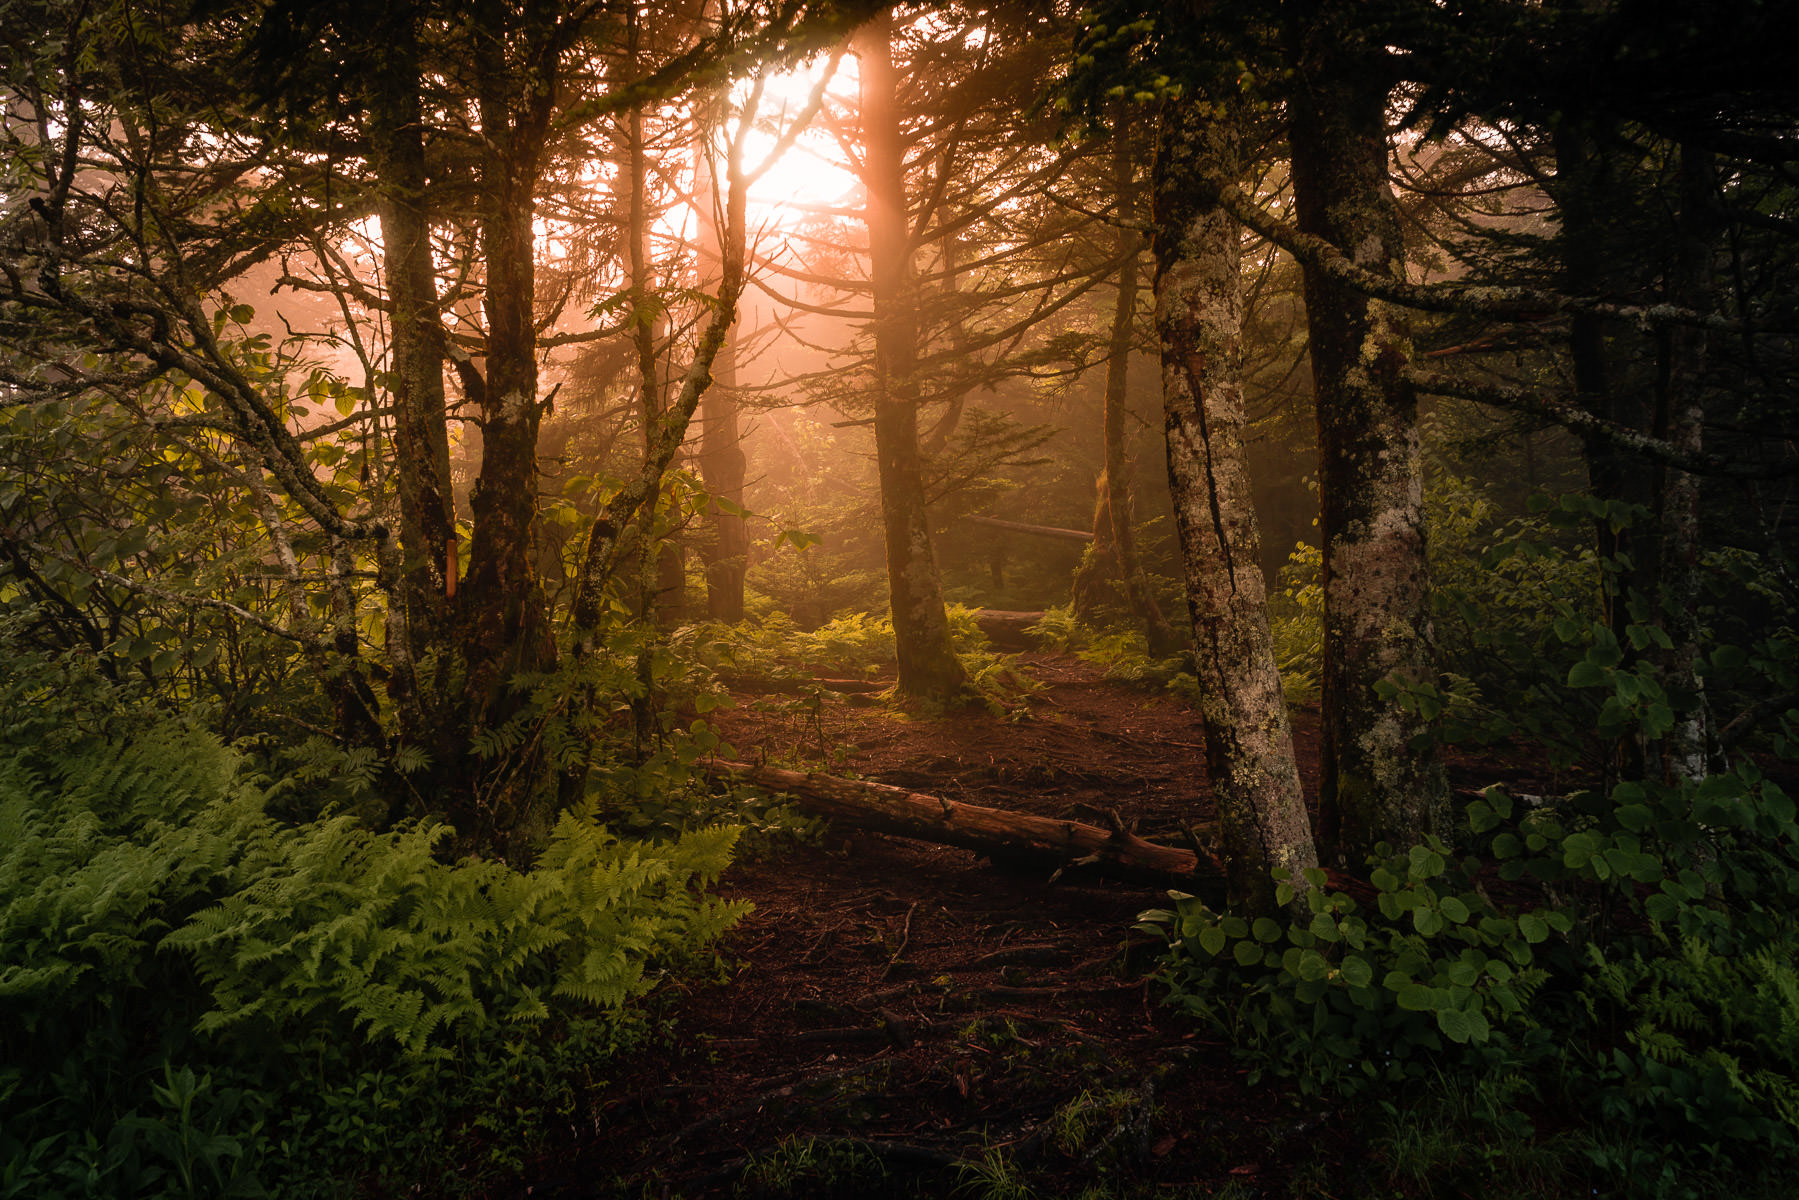 The morning sun shines through the trees near the peak of Clingmans Dome in the Great Smoky Mountains National Park, Tennessee.